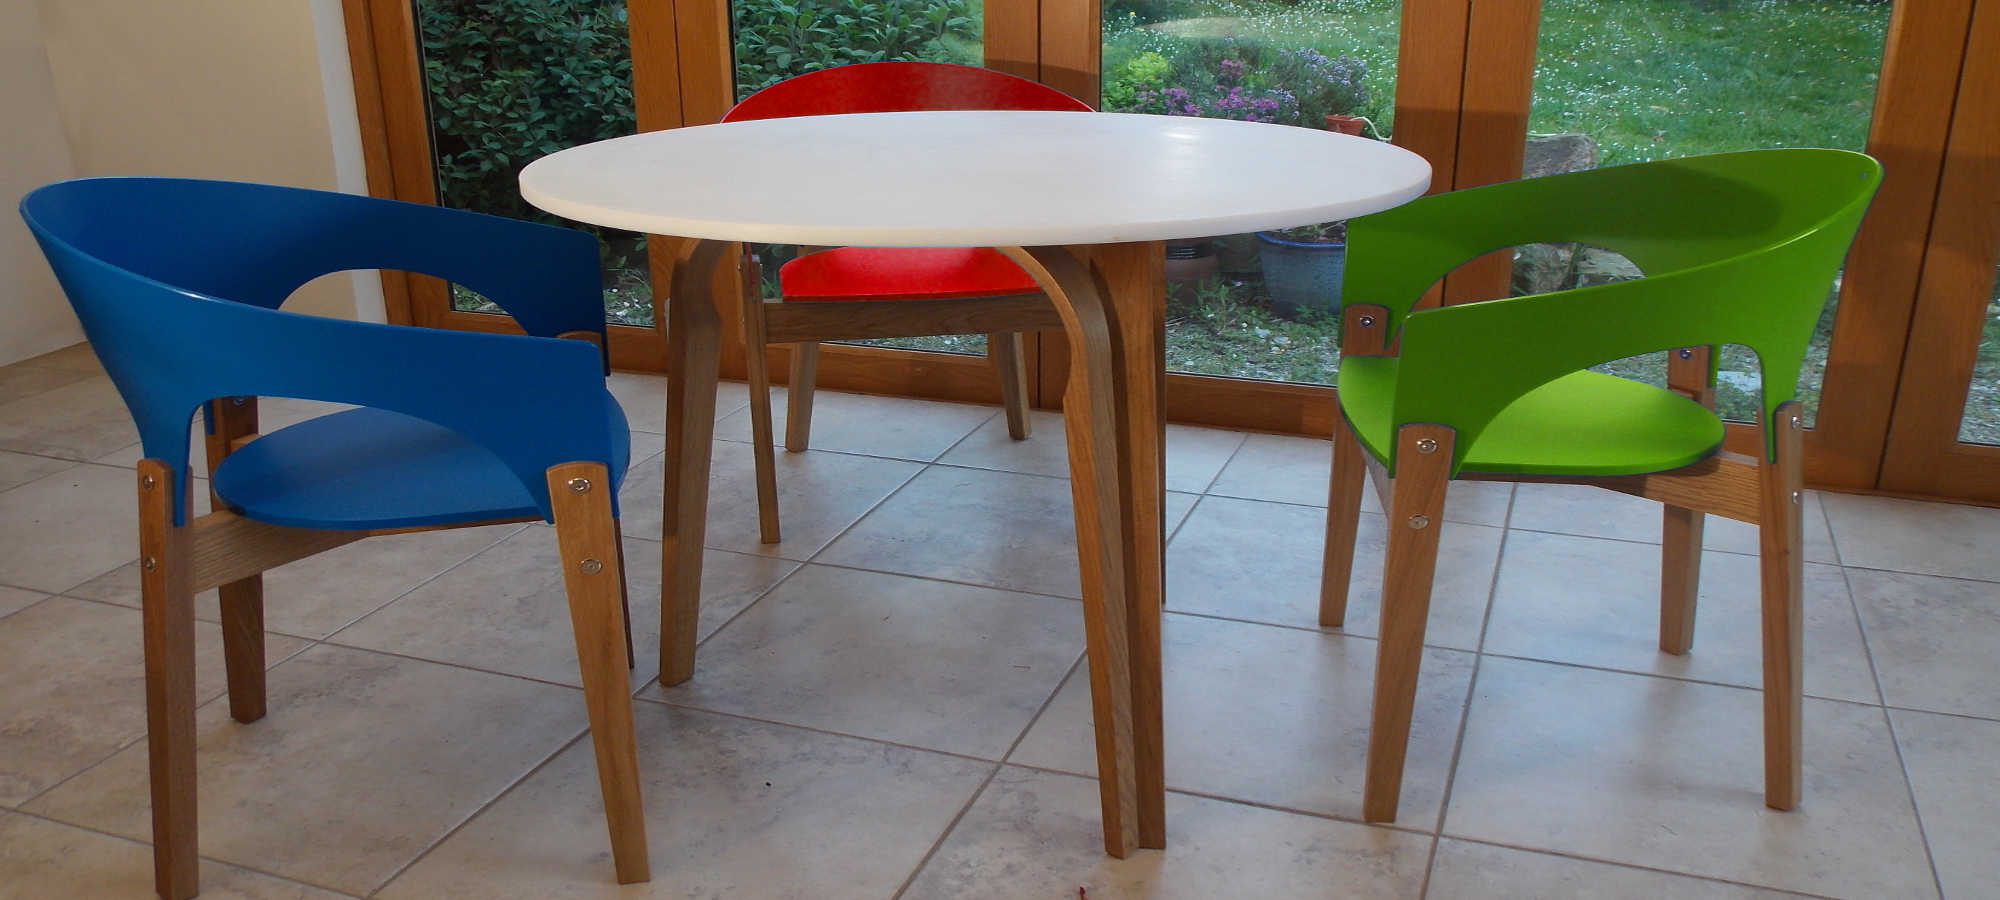 Re-Form Table and Chairs